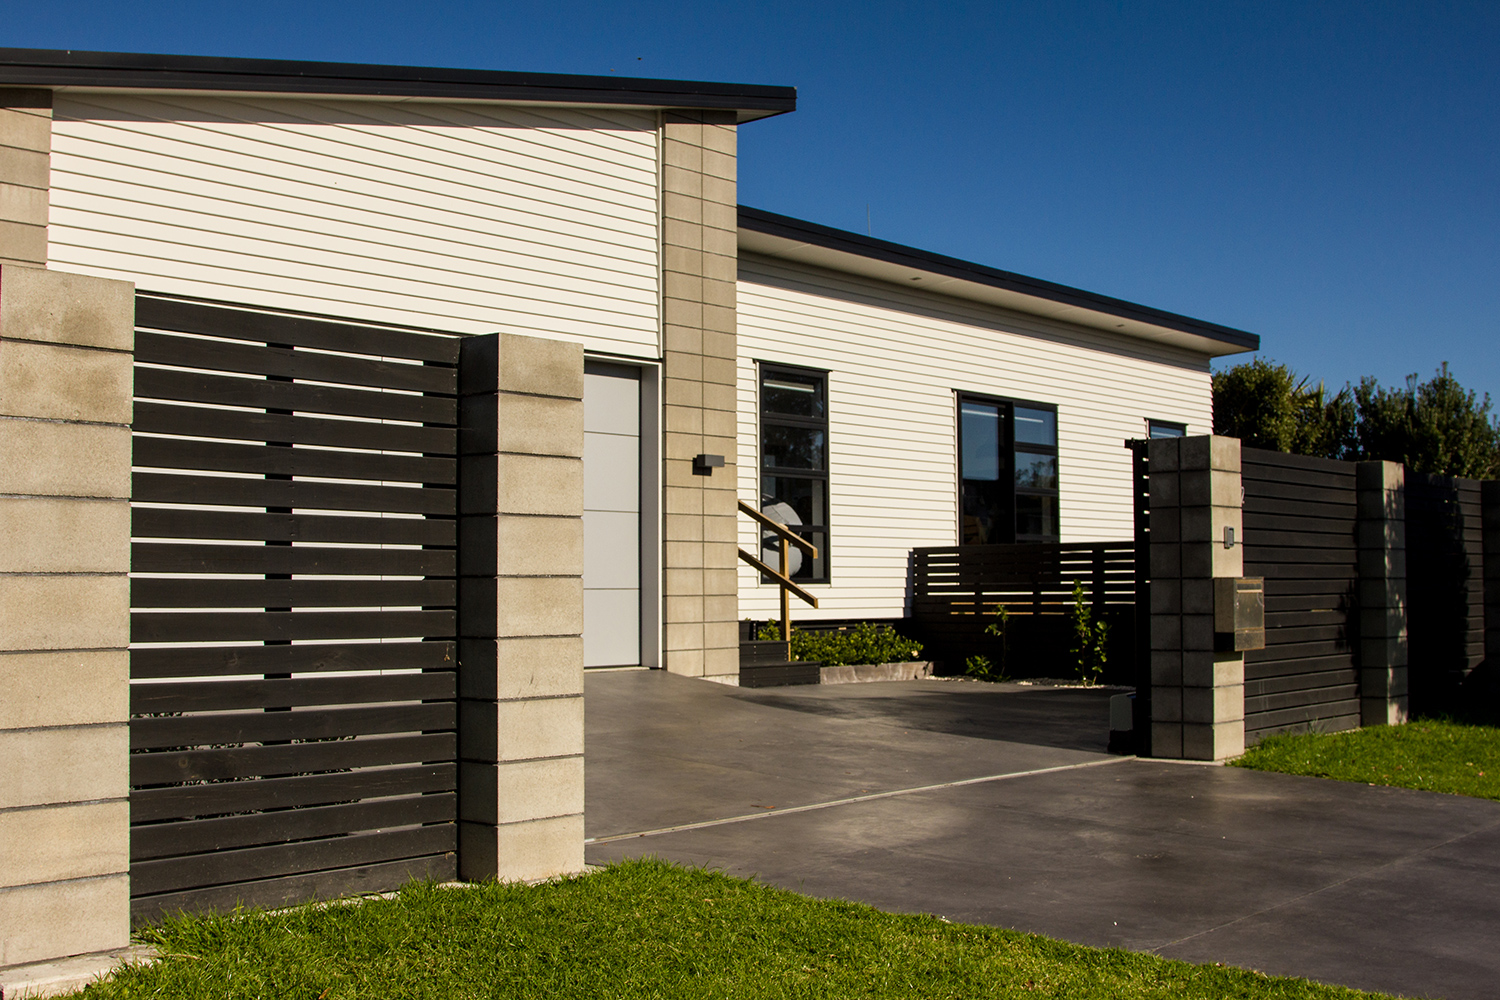 Iris Design - Dufty Project